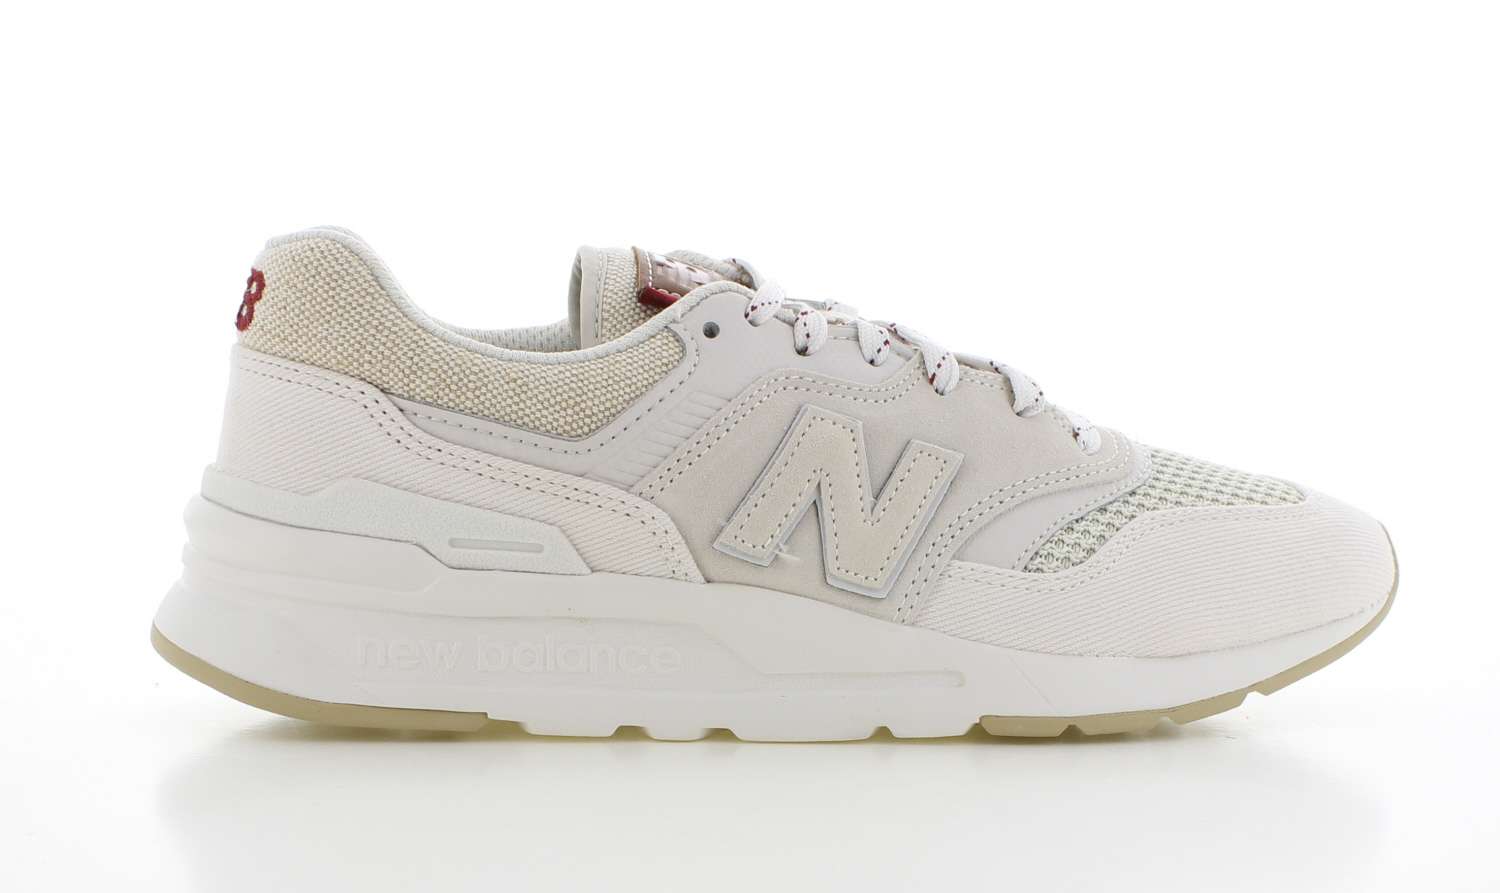 New Balance 997 Wit/Beige Heren